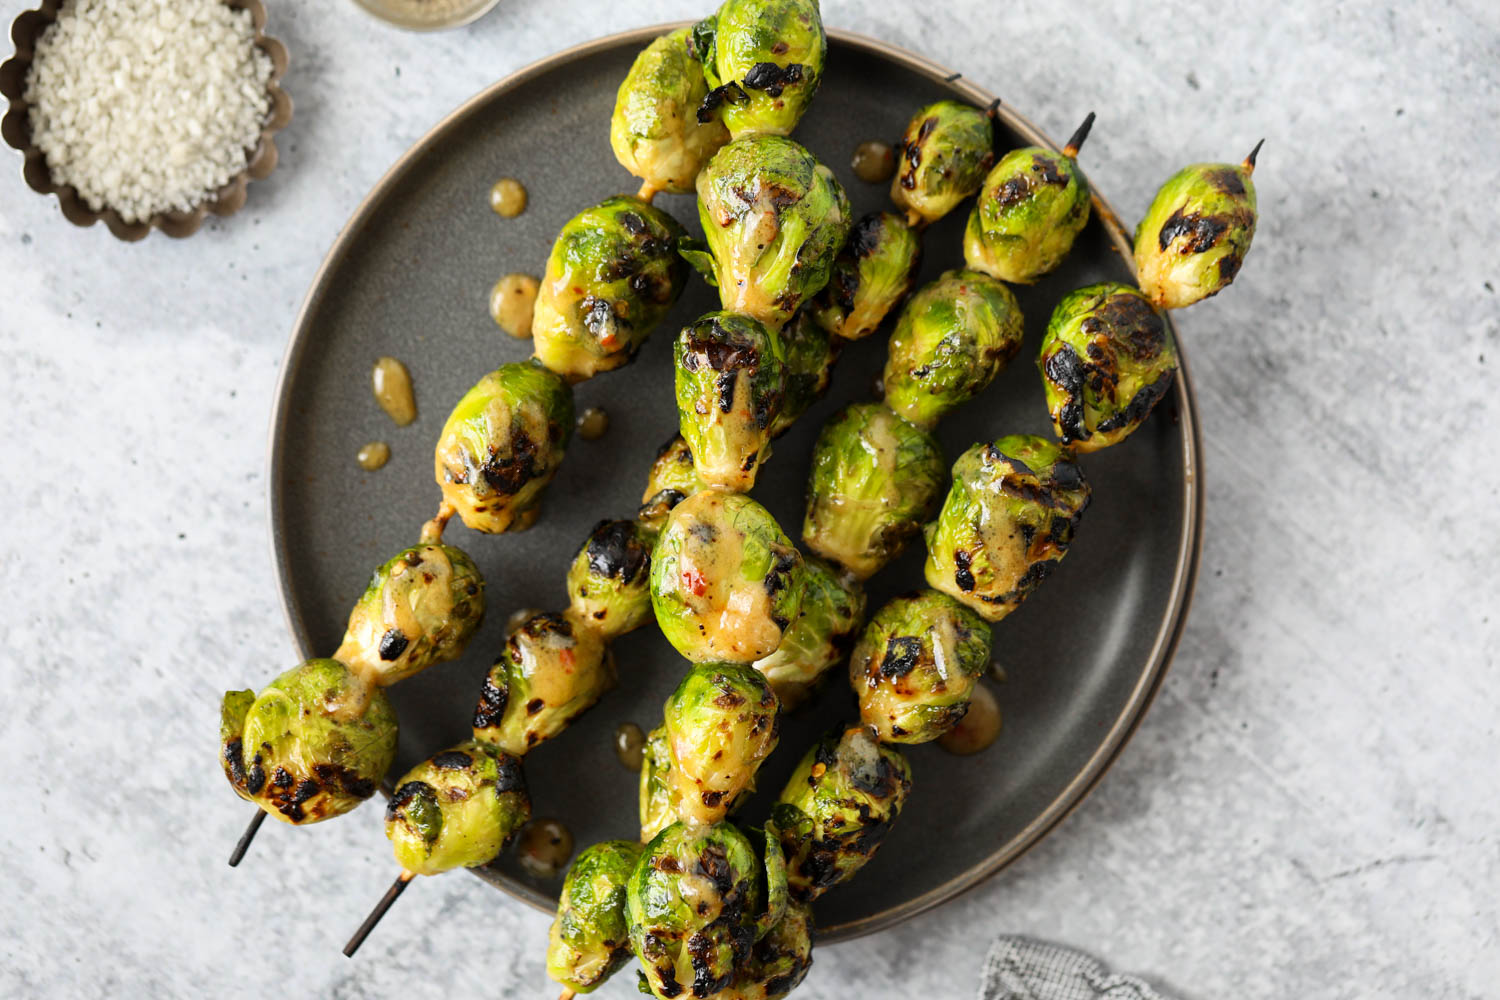 Grilled Brussels Sprouts with Maple-Mustard Glaze